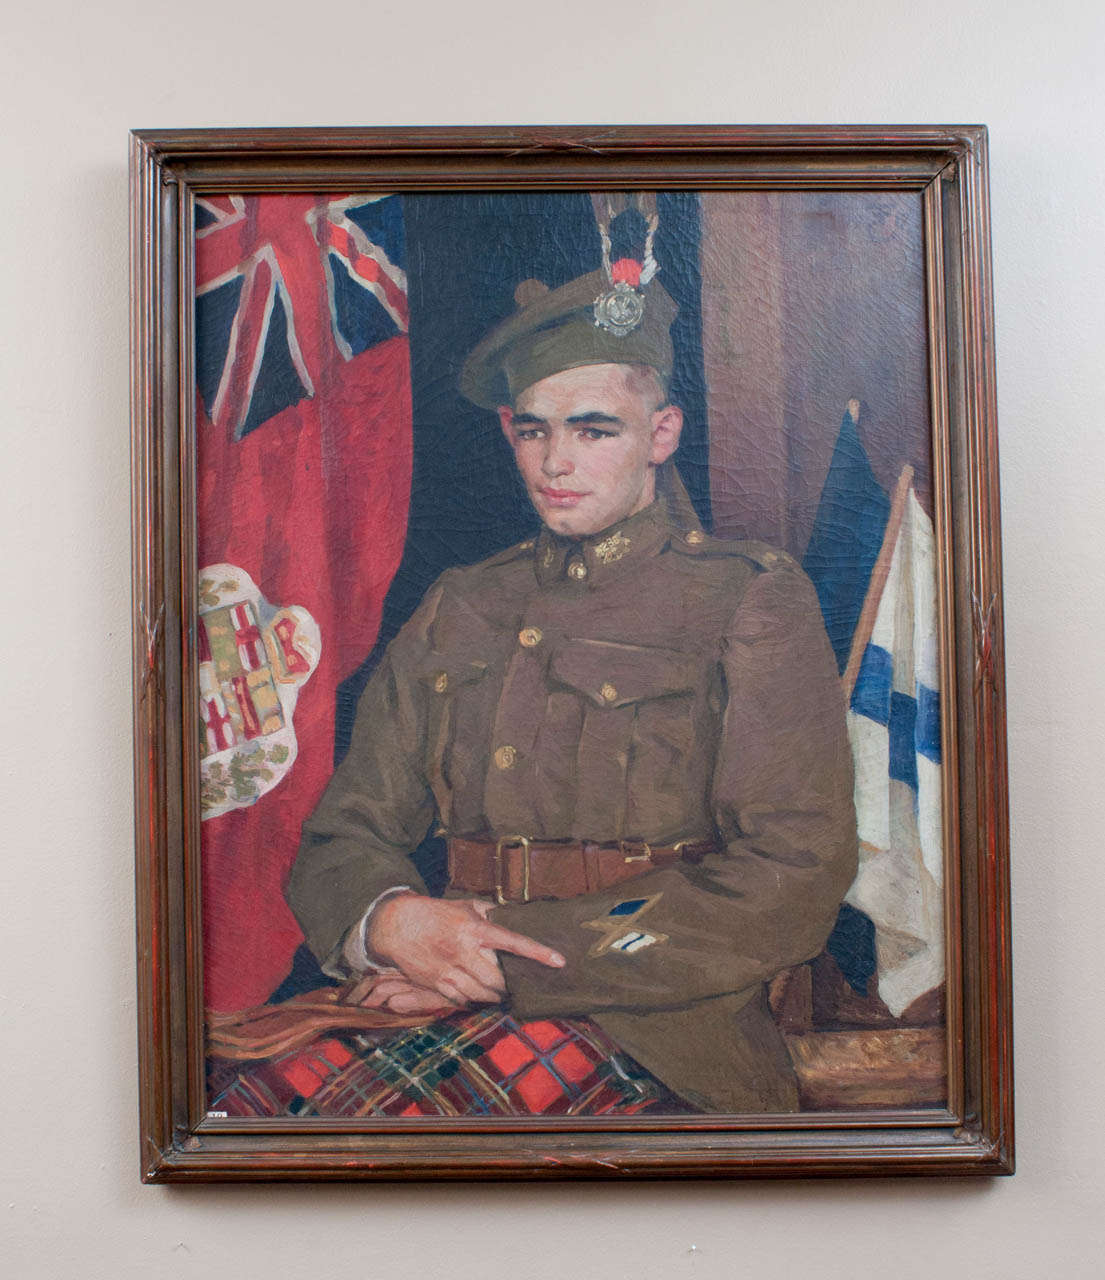 This wonderful portrait of a young man in New Brunswick Kilties uniform during World War I is both great art and an important historical artifact. Painted by Eben Farrington Comins (1875–1949), it was exhibited at the winter show of the National